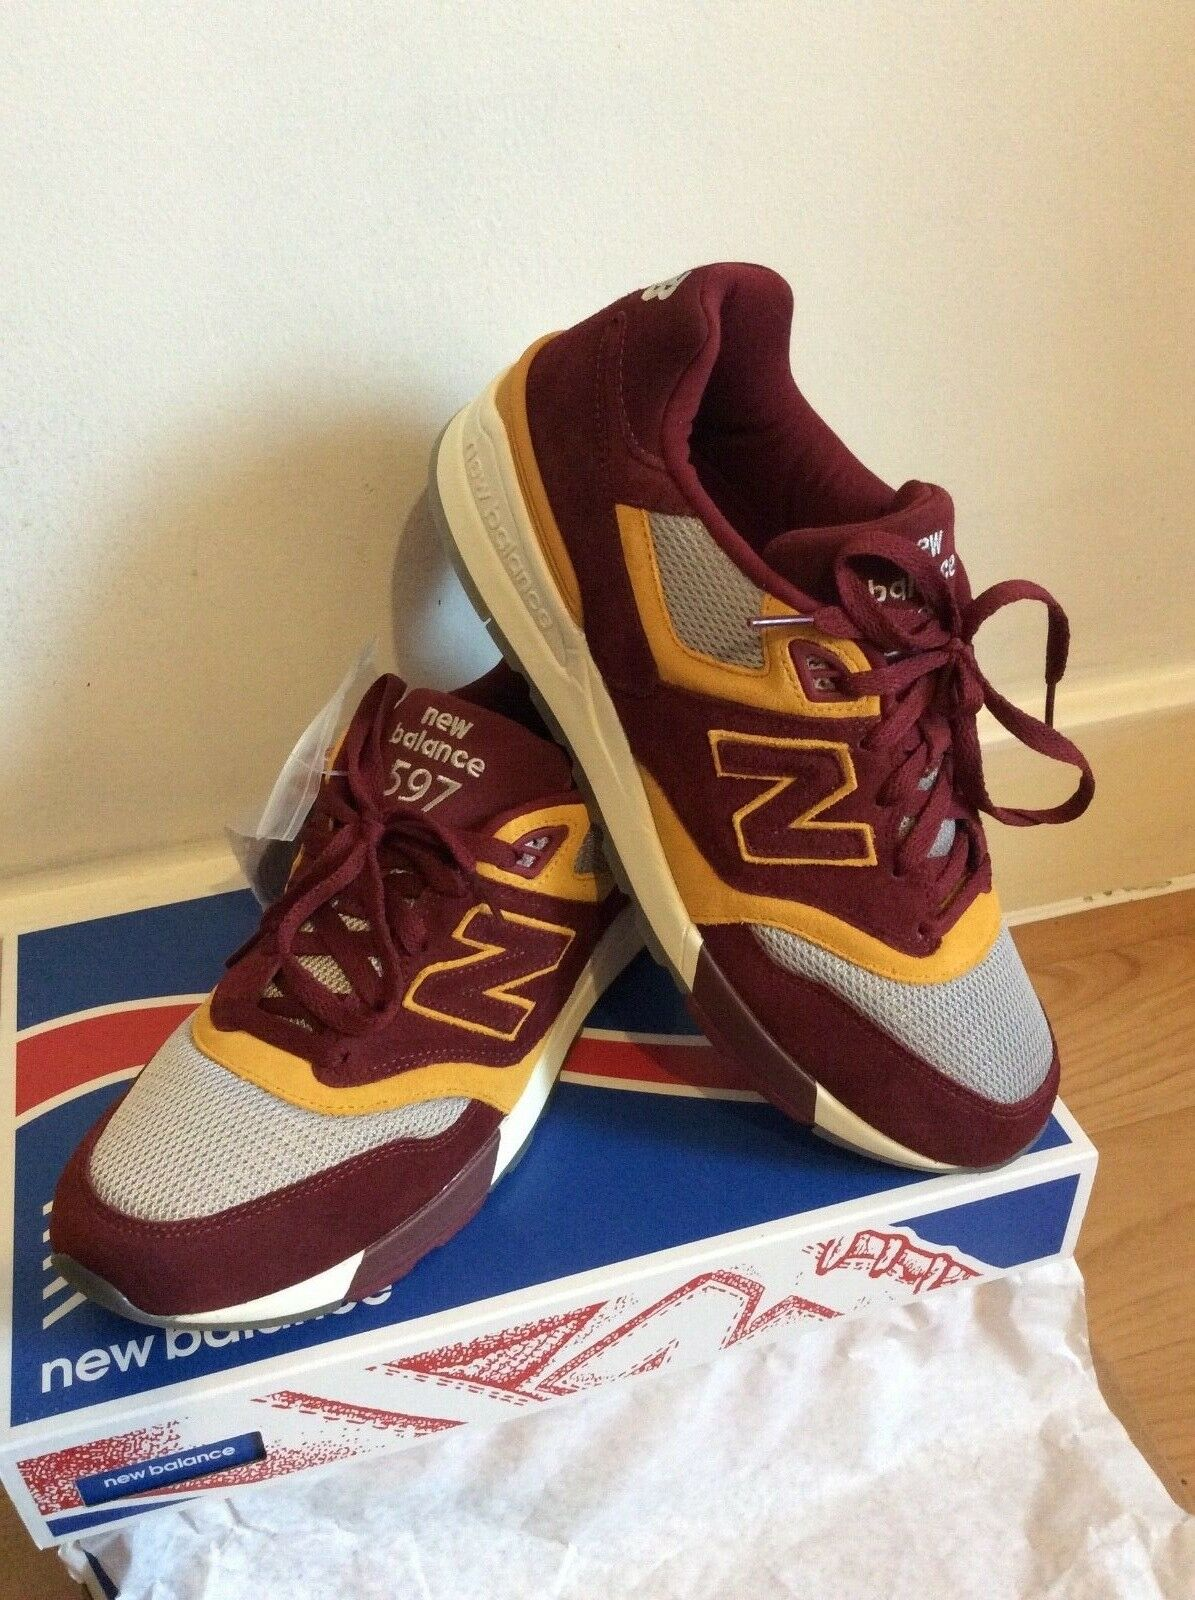 New balance ML597 in size 10